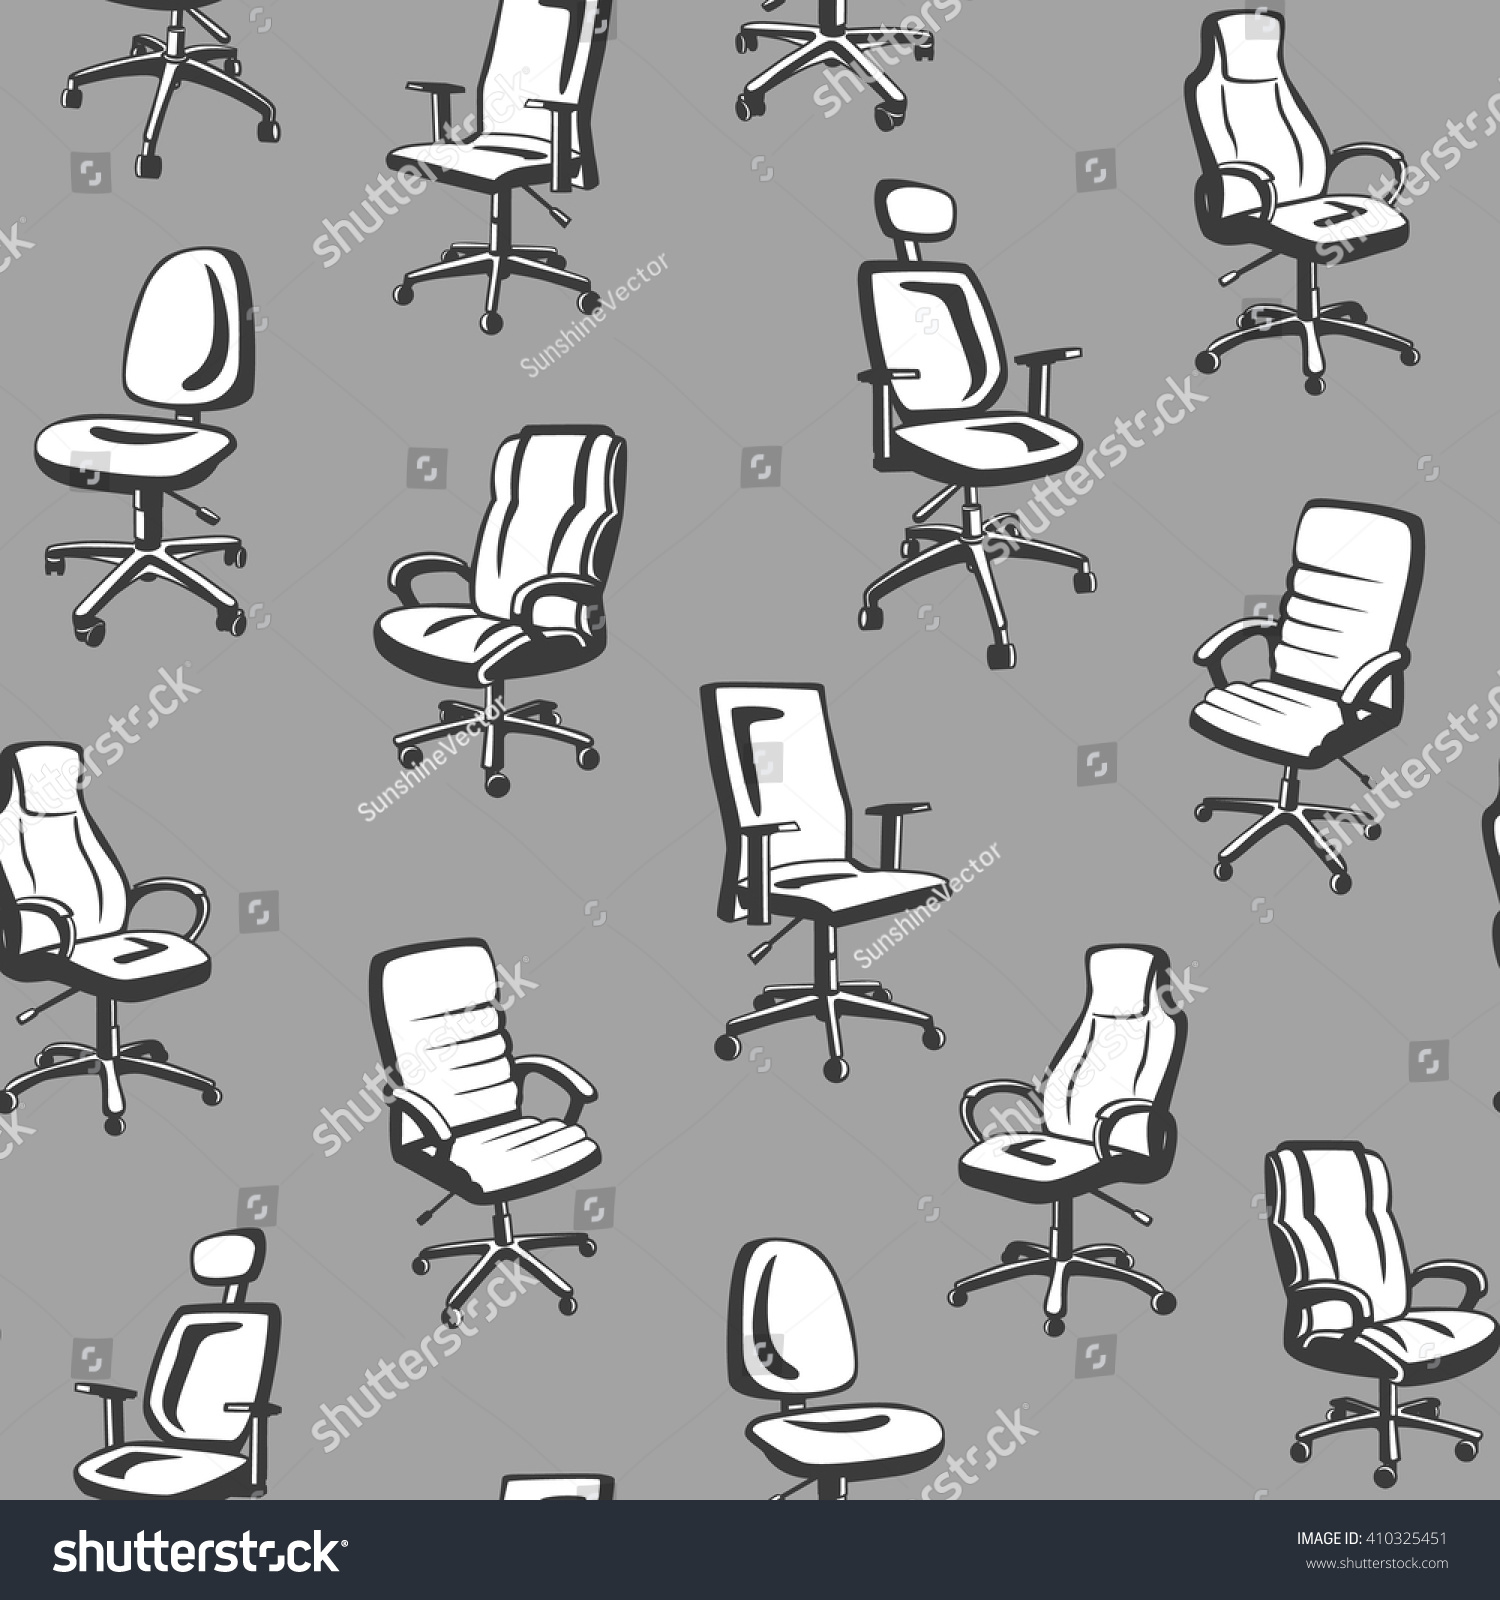 Monochrome fice Chairs Seamless Pattern Seamless Stock Vector